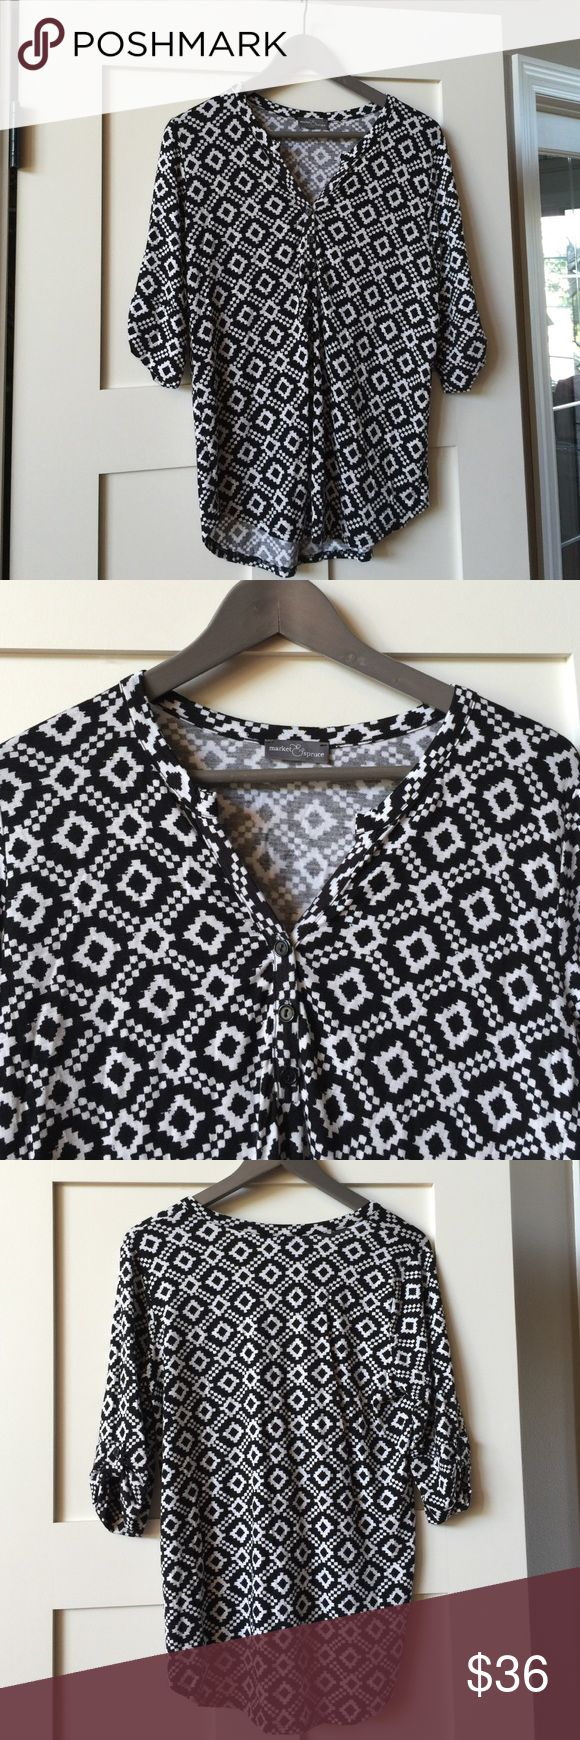 I really loved the fit on this blouse, but hate the pattern. If you had it in a solid I would probably have bought it.